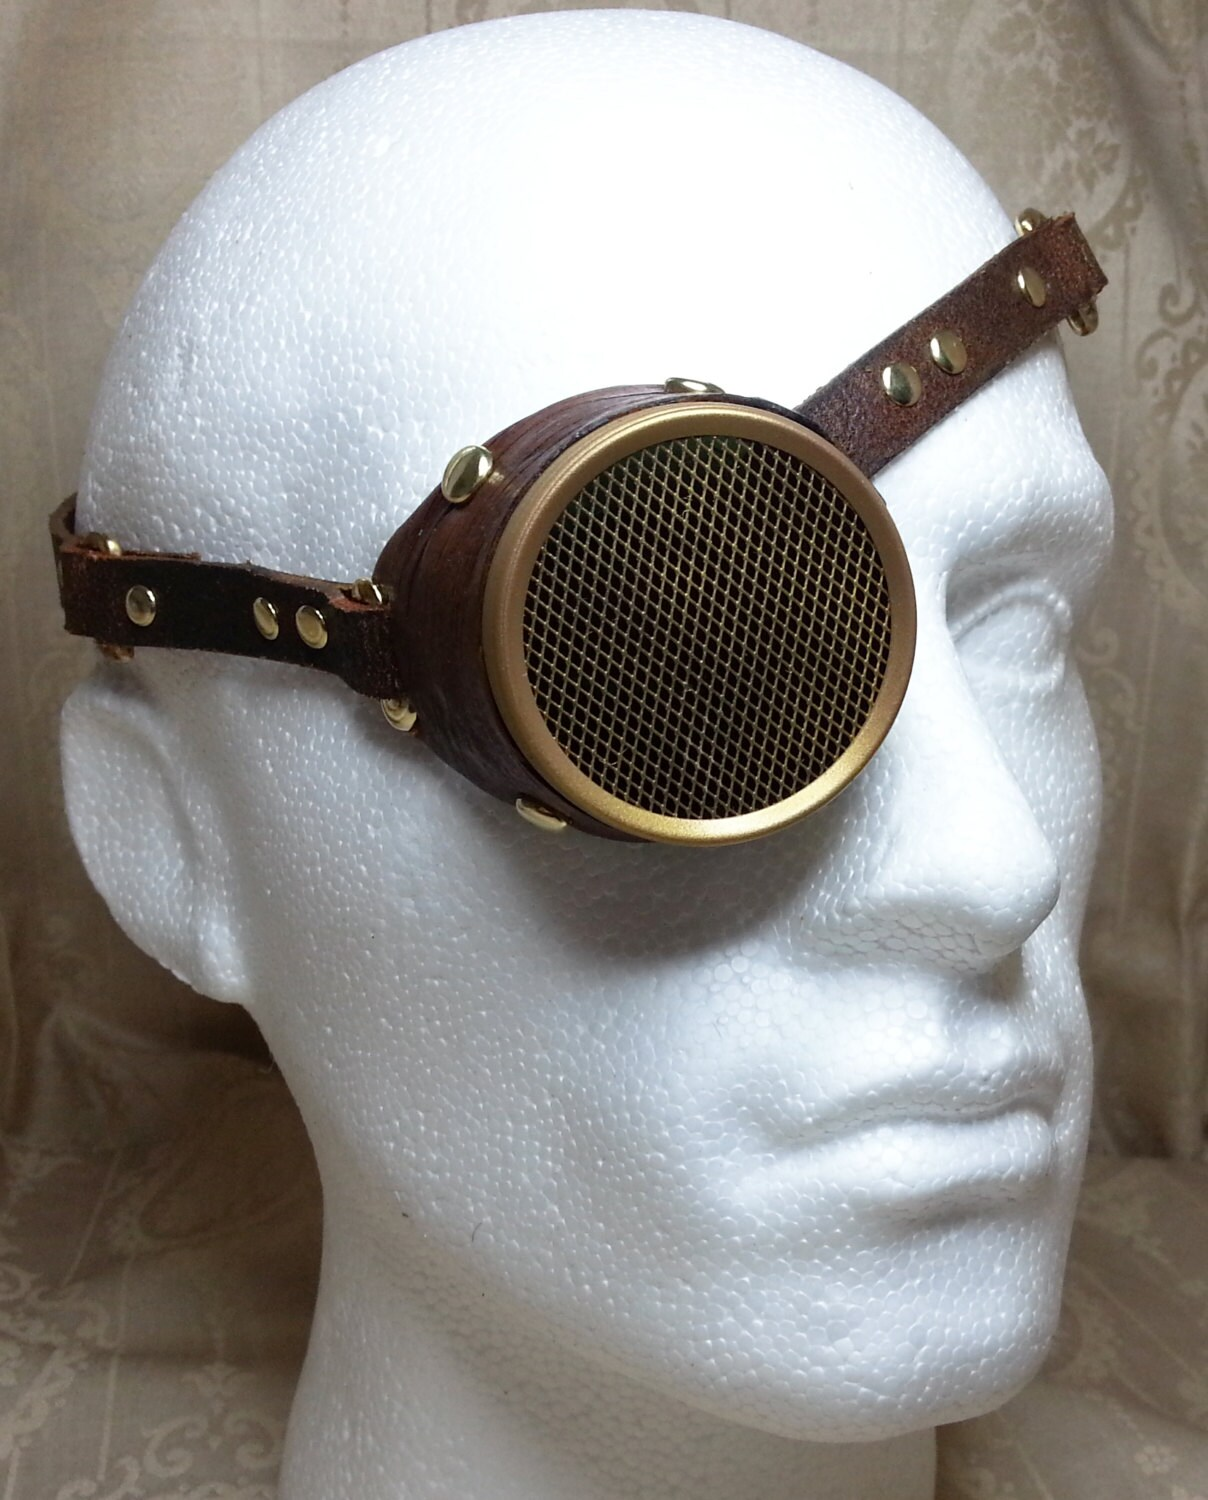 Steampunk Monocle Steampunk goggles vintage goggles | Etsy